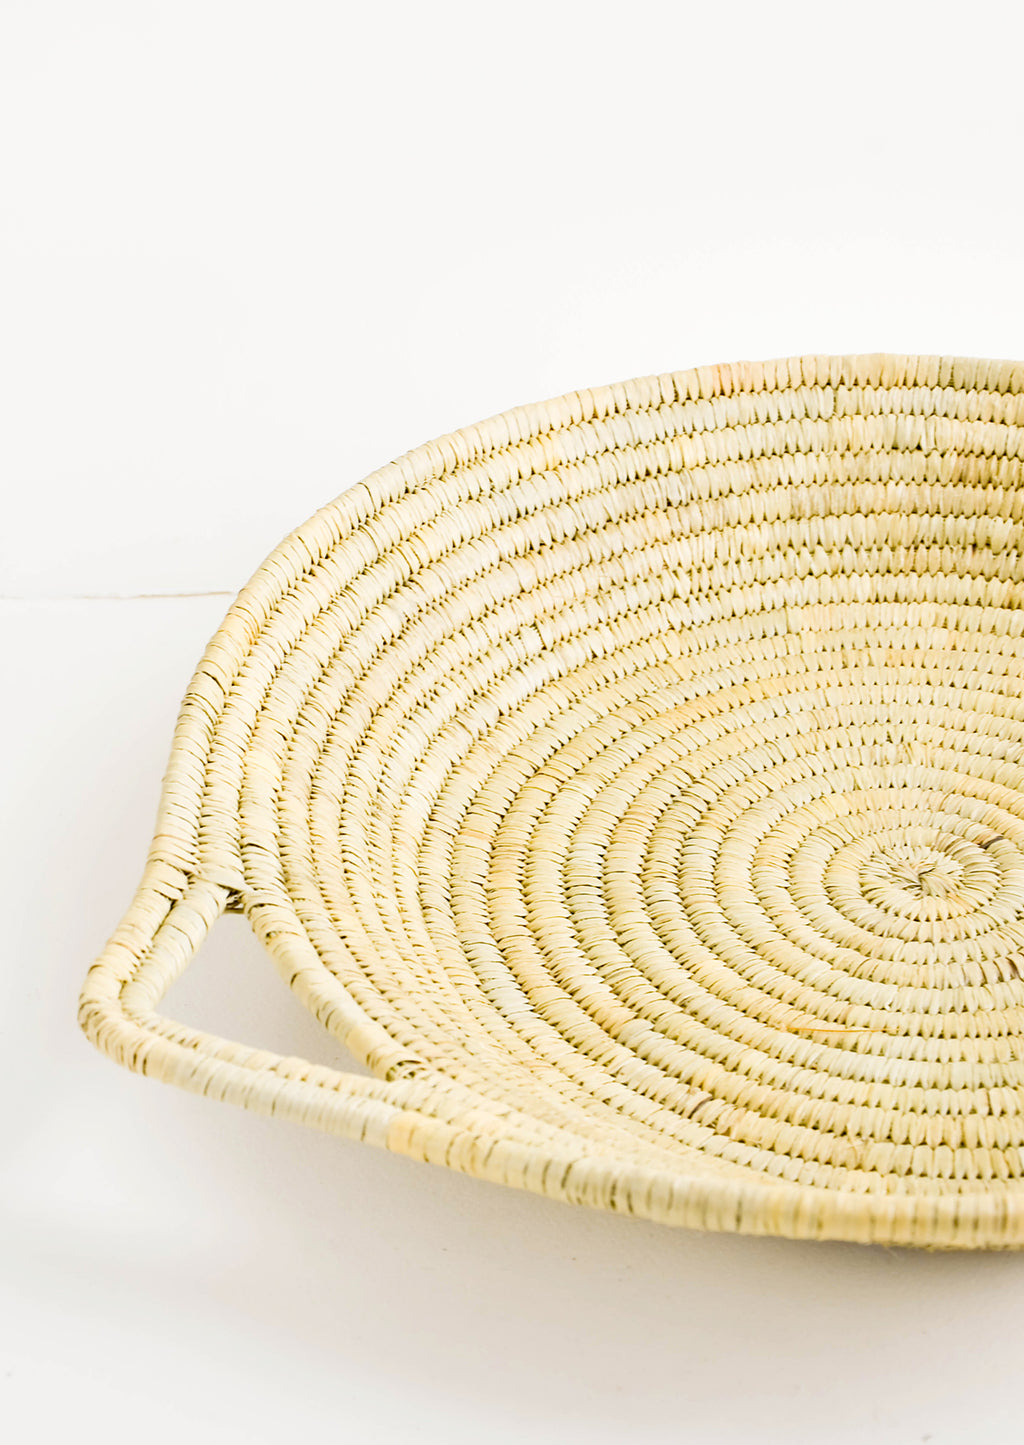 2: Flat, round platter woven from natural straw with handles at sides